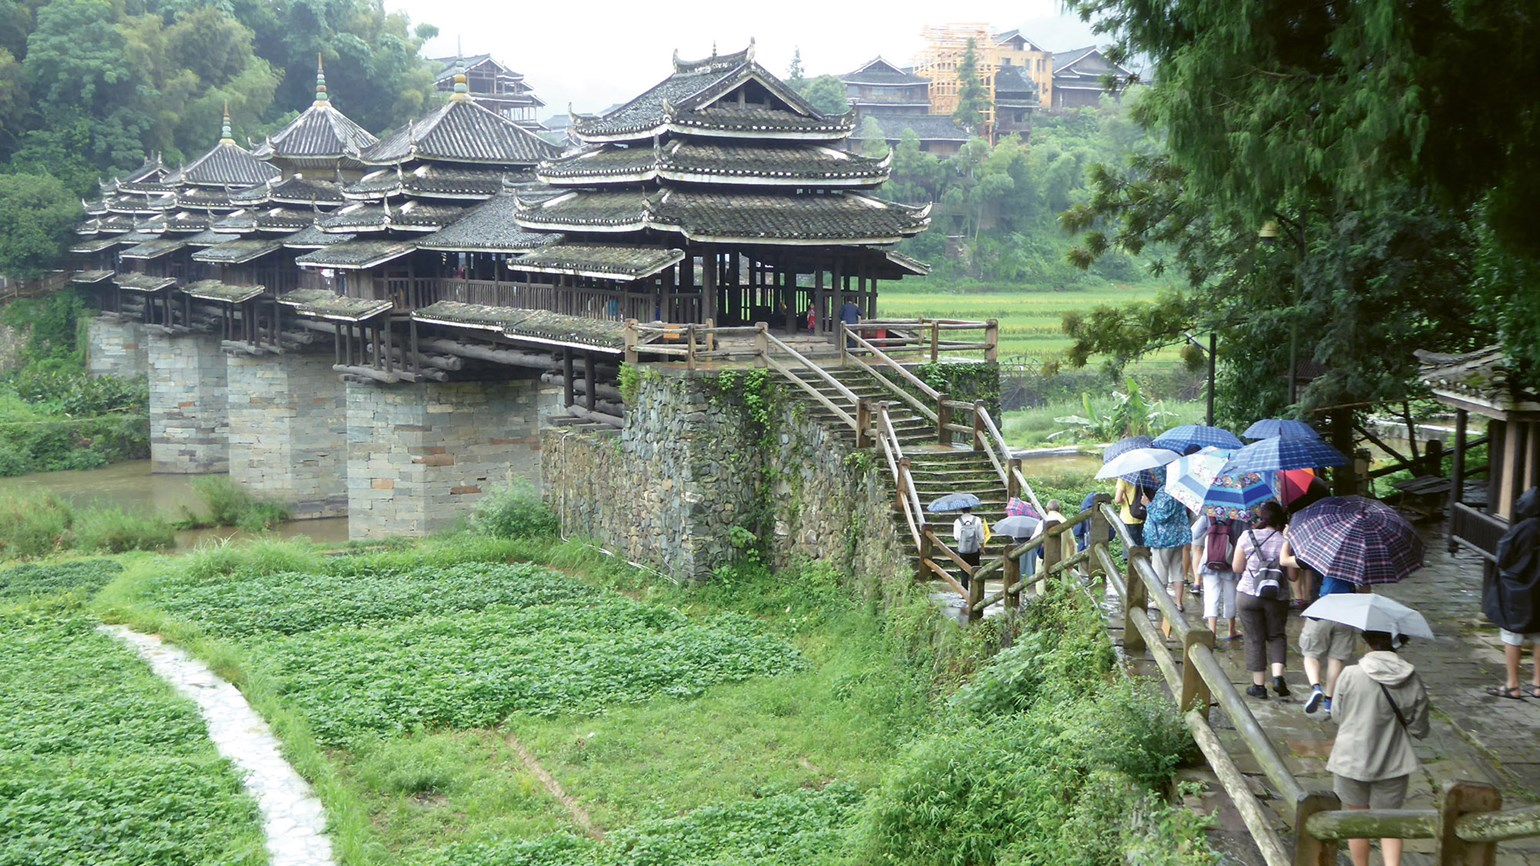 Near Guilin, scenes straight from a storybook